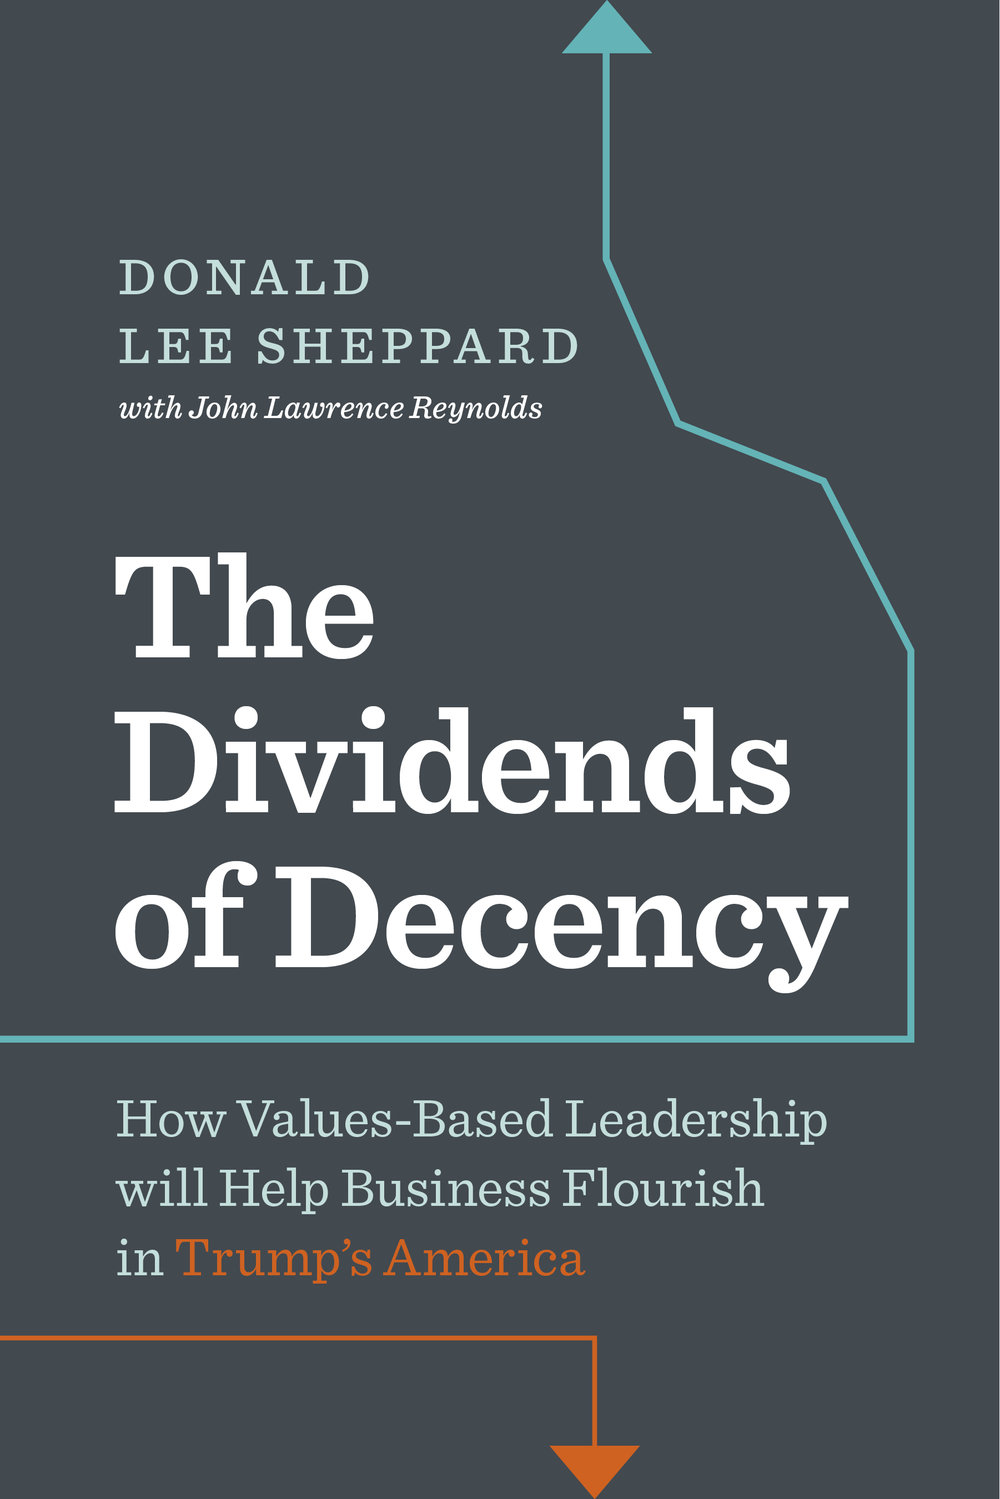 Dividends of Decency Cover.jpg